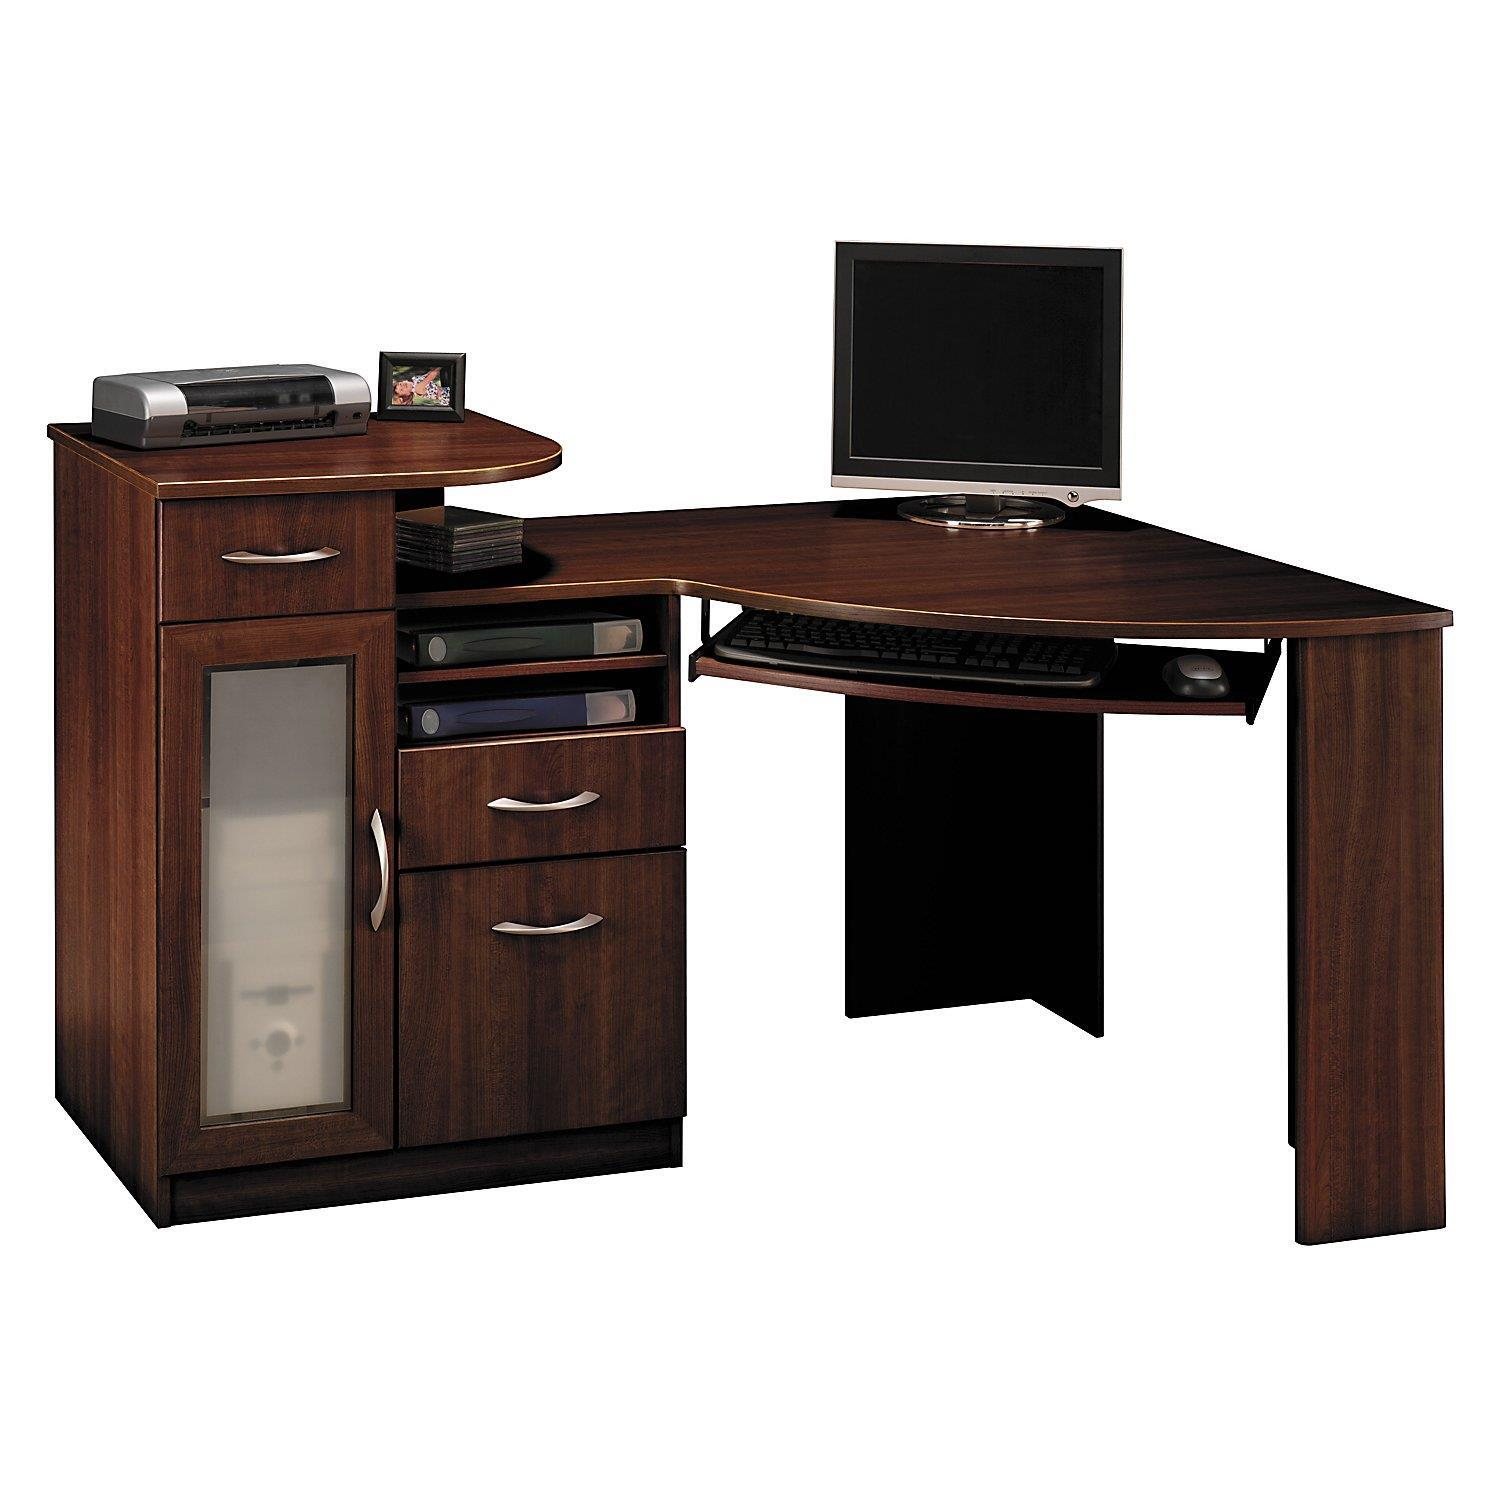 Bush Furniture Corner Desk by OJ Commerce $228.03 - $382.99